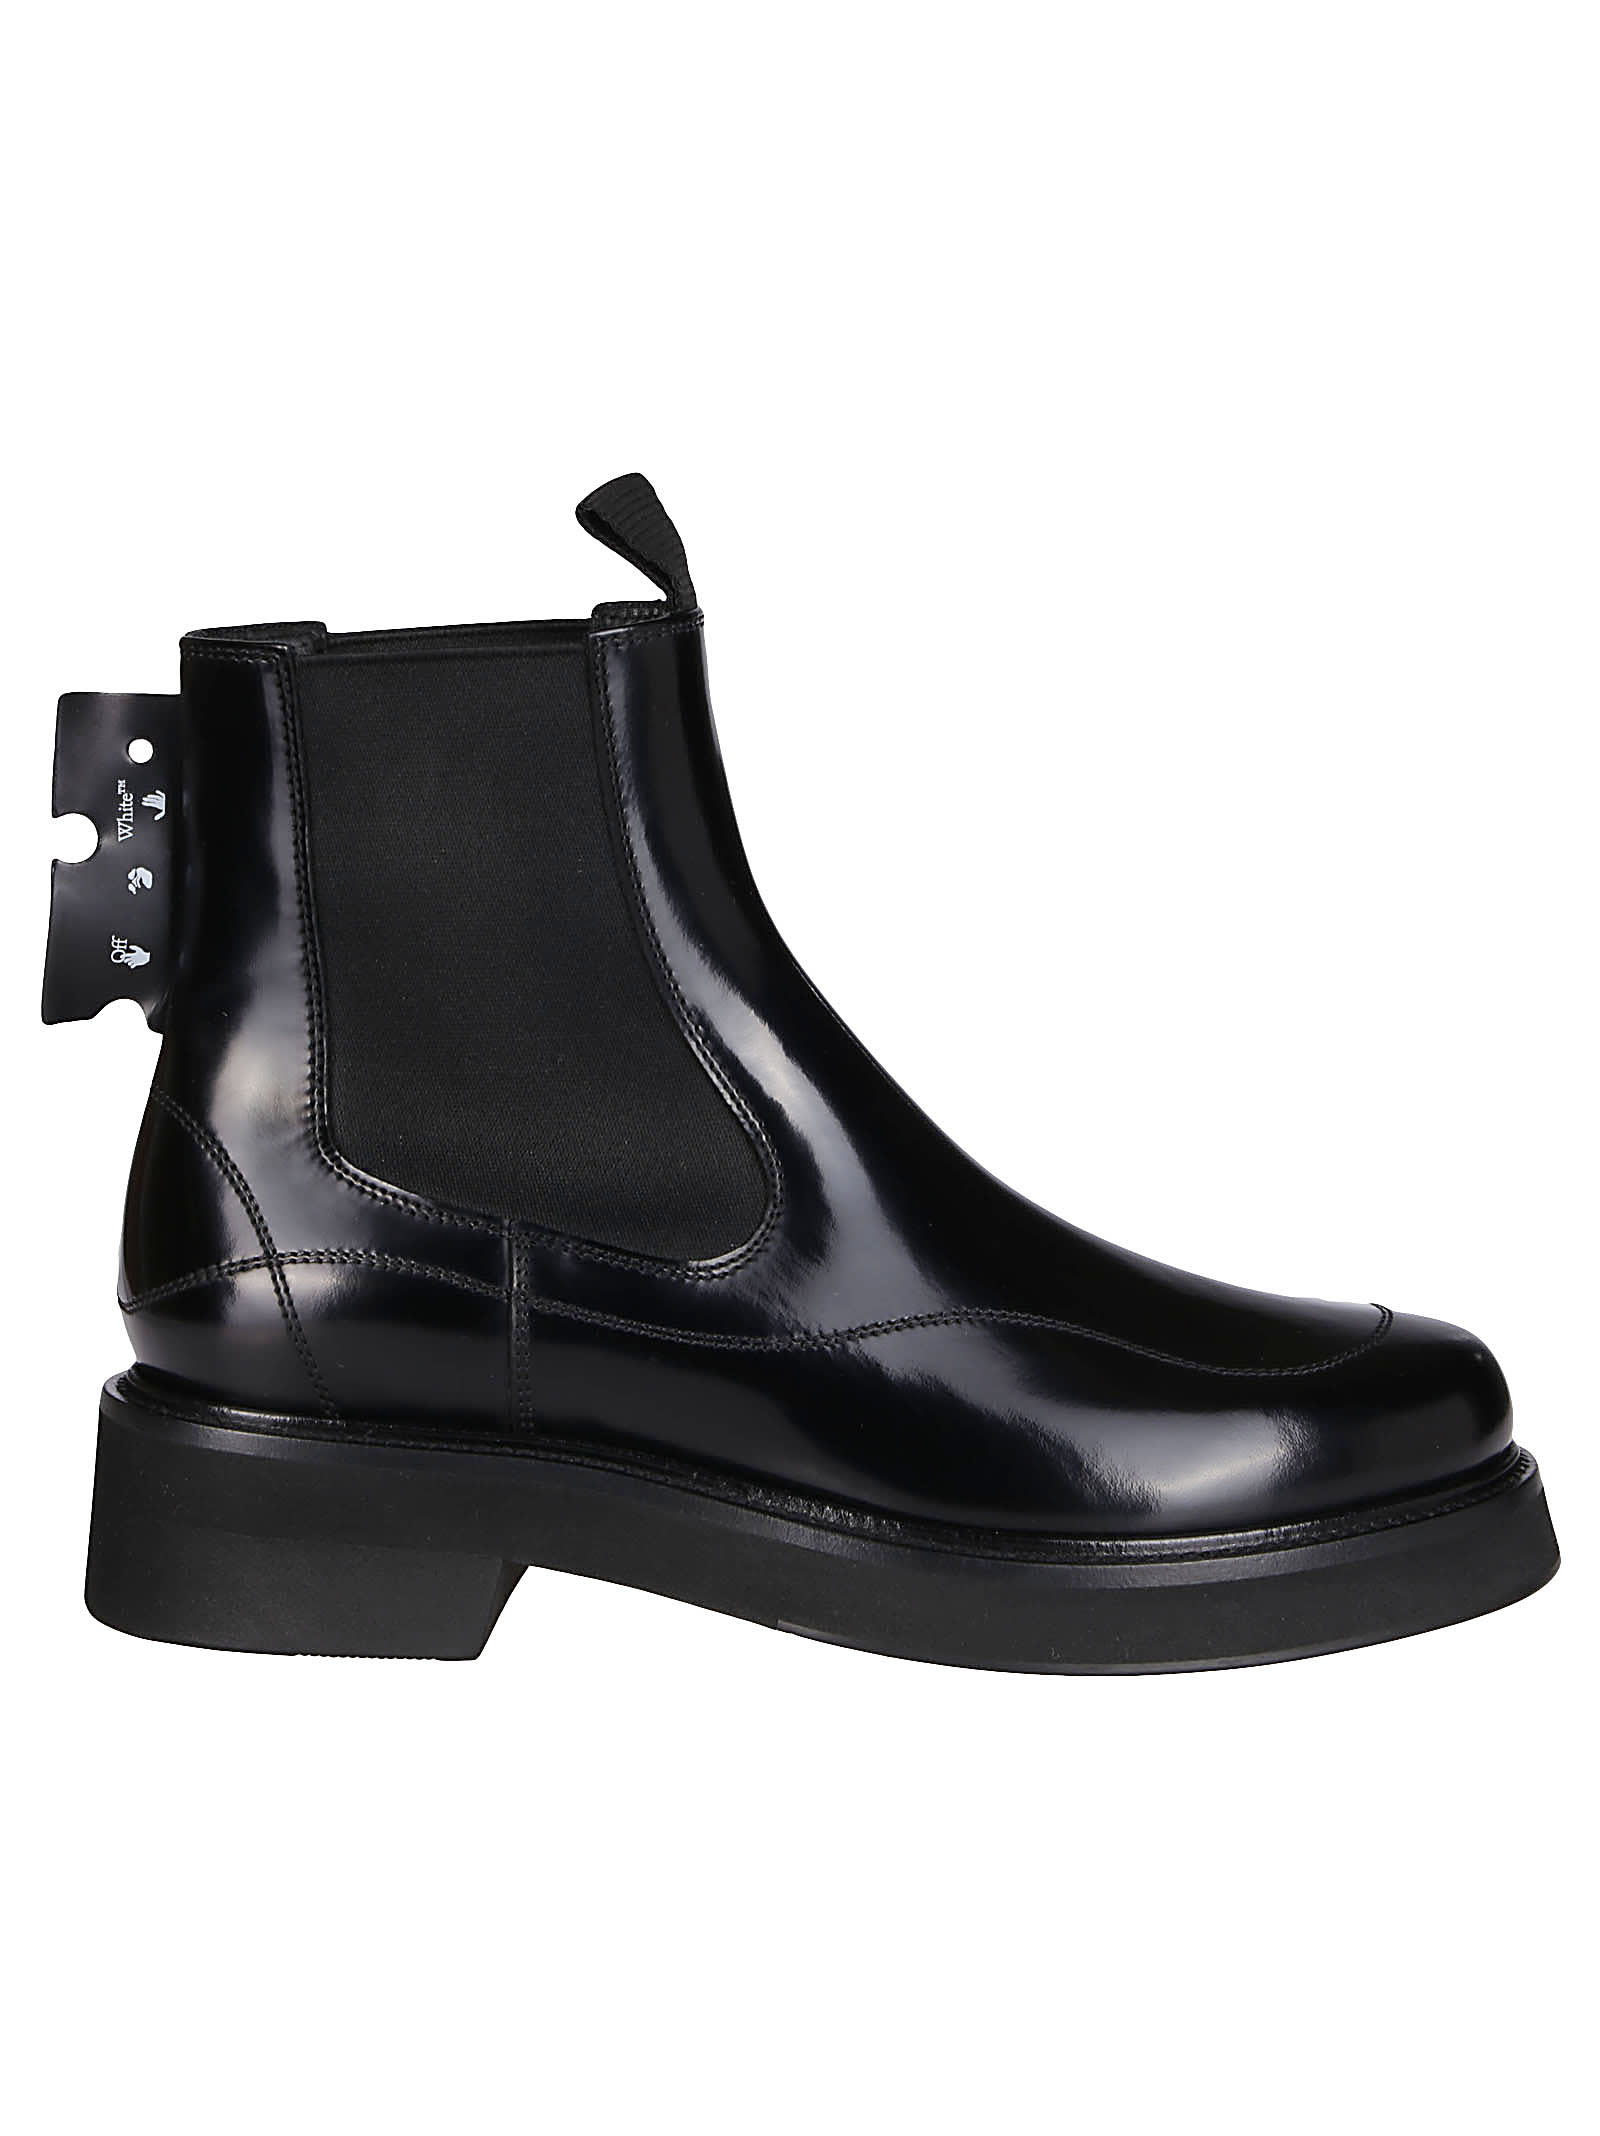 Off-White Black Leather Chelsea Boots